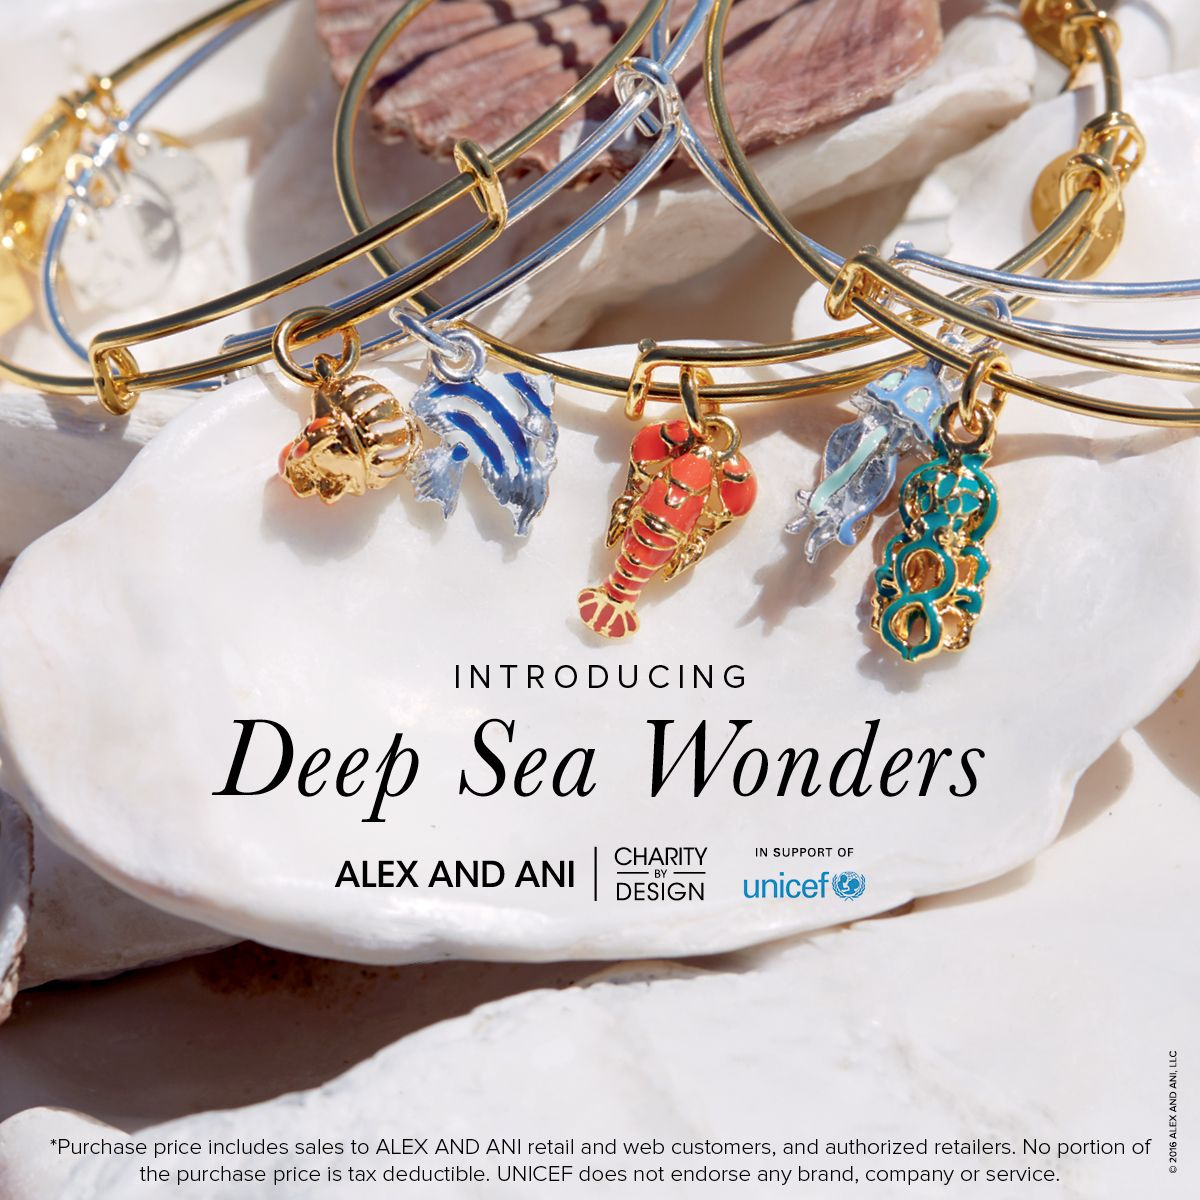 Celebrate the joys of the ocean and support Unicef with the new Summer Deep Sea Wonders Collection | Alex and Ani Charity by Design